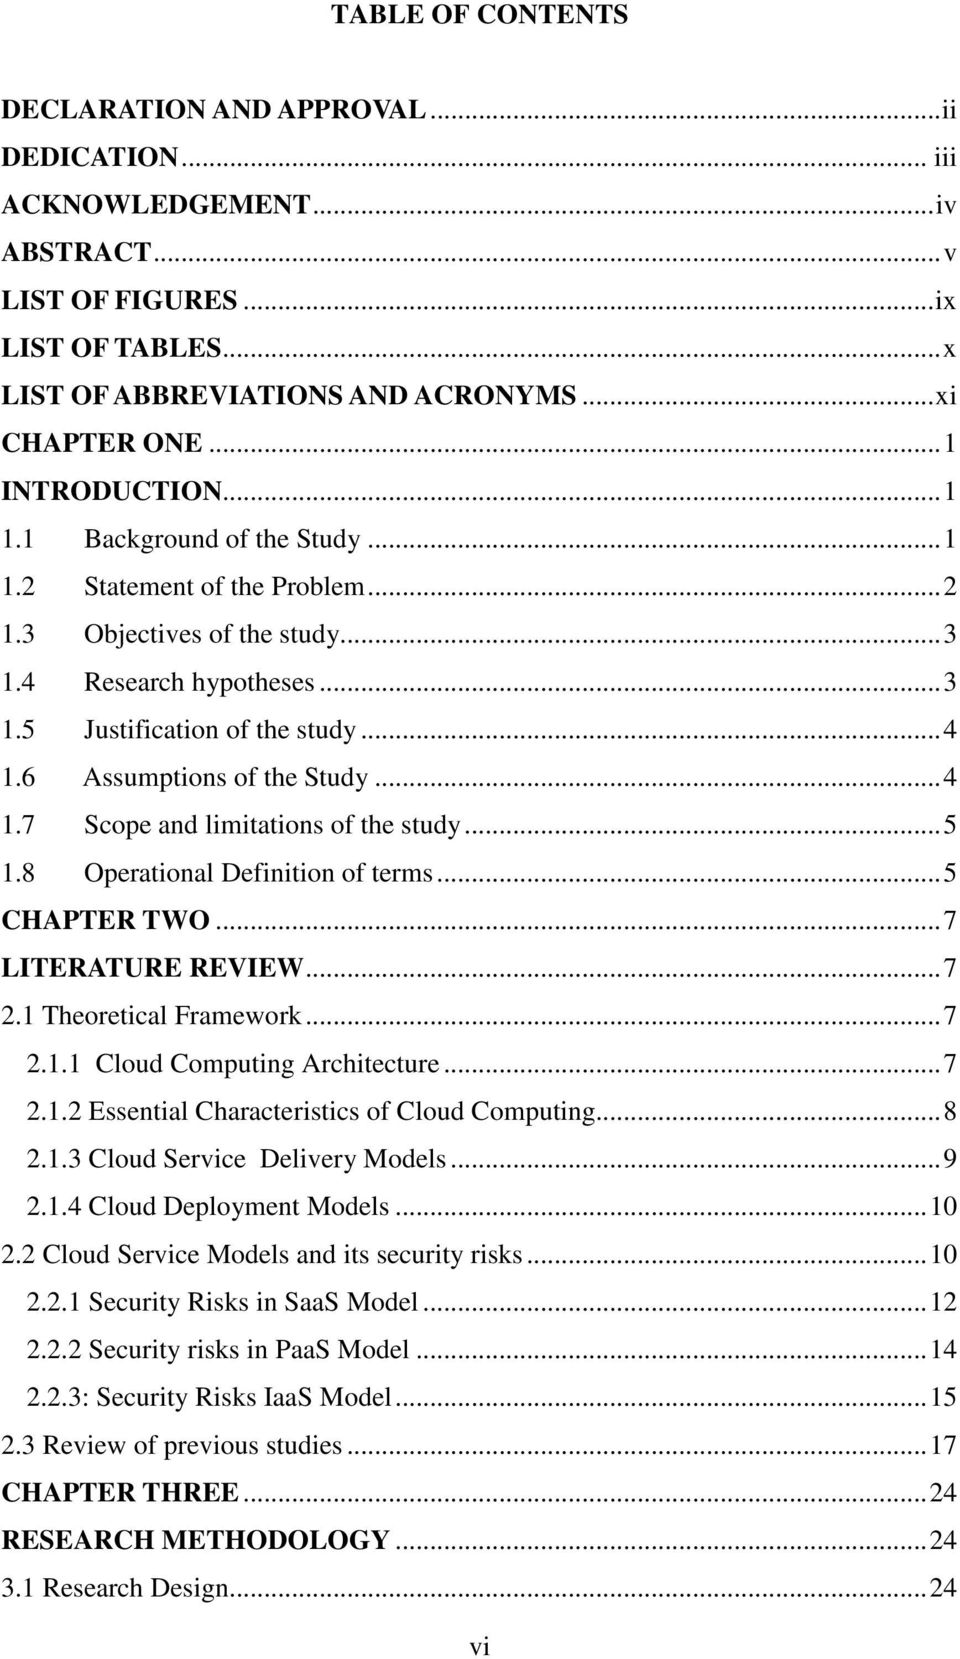 6 Assumptions of the Study...4 1.7 Scope and limitations of the study...5 1.8 Operational Definition of terms...5 CHAPTER TWO...7 LITERATURE REVIEW...7 2.1 Theoretical Framework...7 2.1.1 Cloud Computing Architecture.